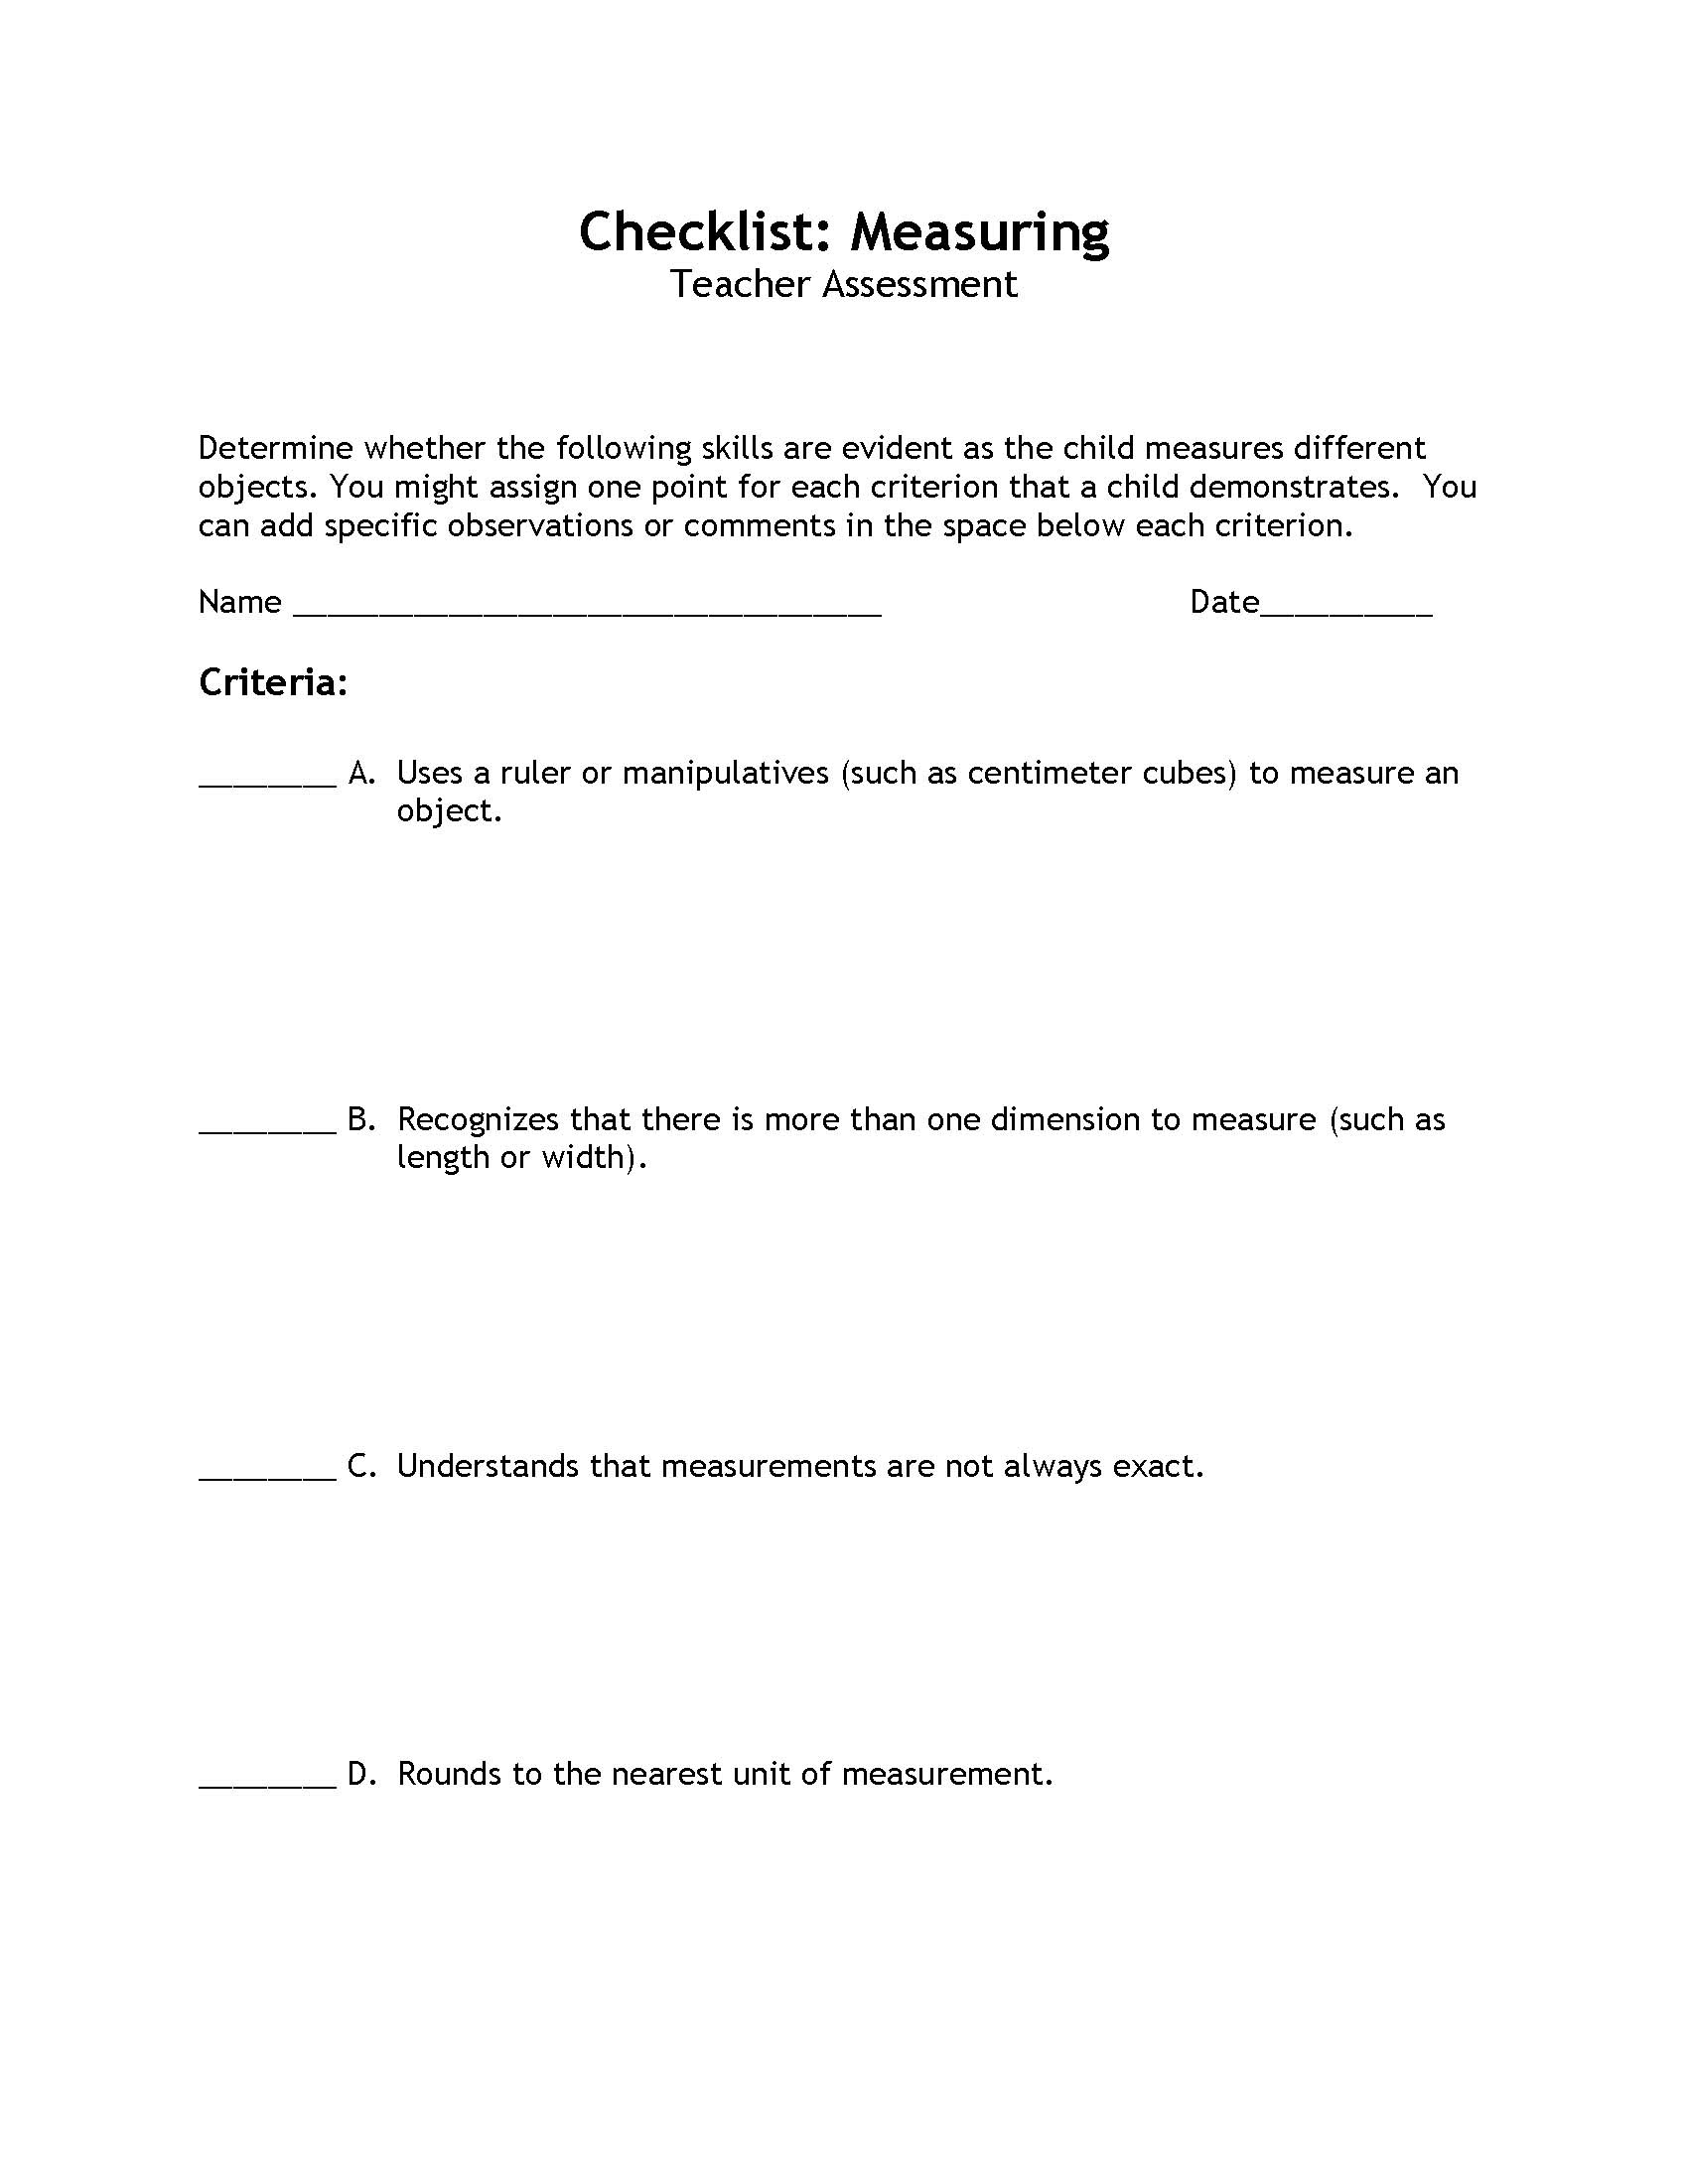 Science and Children Online Connections – Safety Plan Worksheet